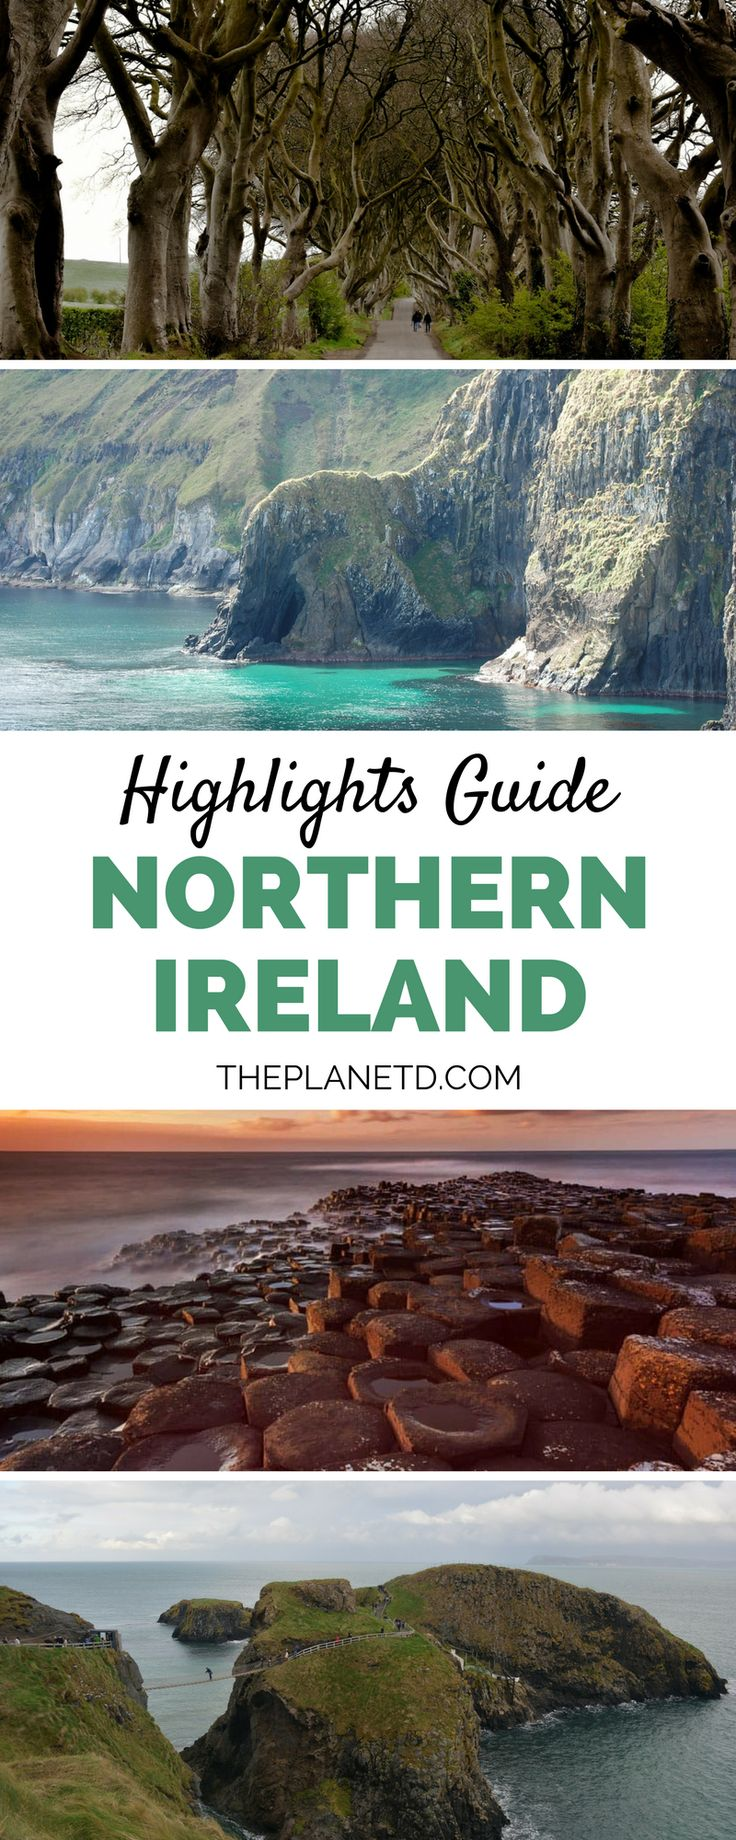 A bucket list worthy guide to exploring beautiful places to visit in Northern Ireland. Road trip along the Wild Atlantic Way and see highlights such as Giant's Causeway and Carrick a Rede Rope Bridge, live your Game of Thrones best life and visit the Dark Hedges and so much more. Travel in the United Kingdom. | Blog by the Planet D #NorthernIreland